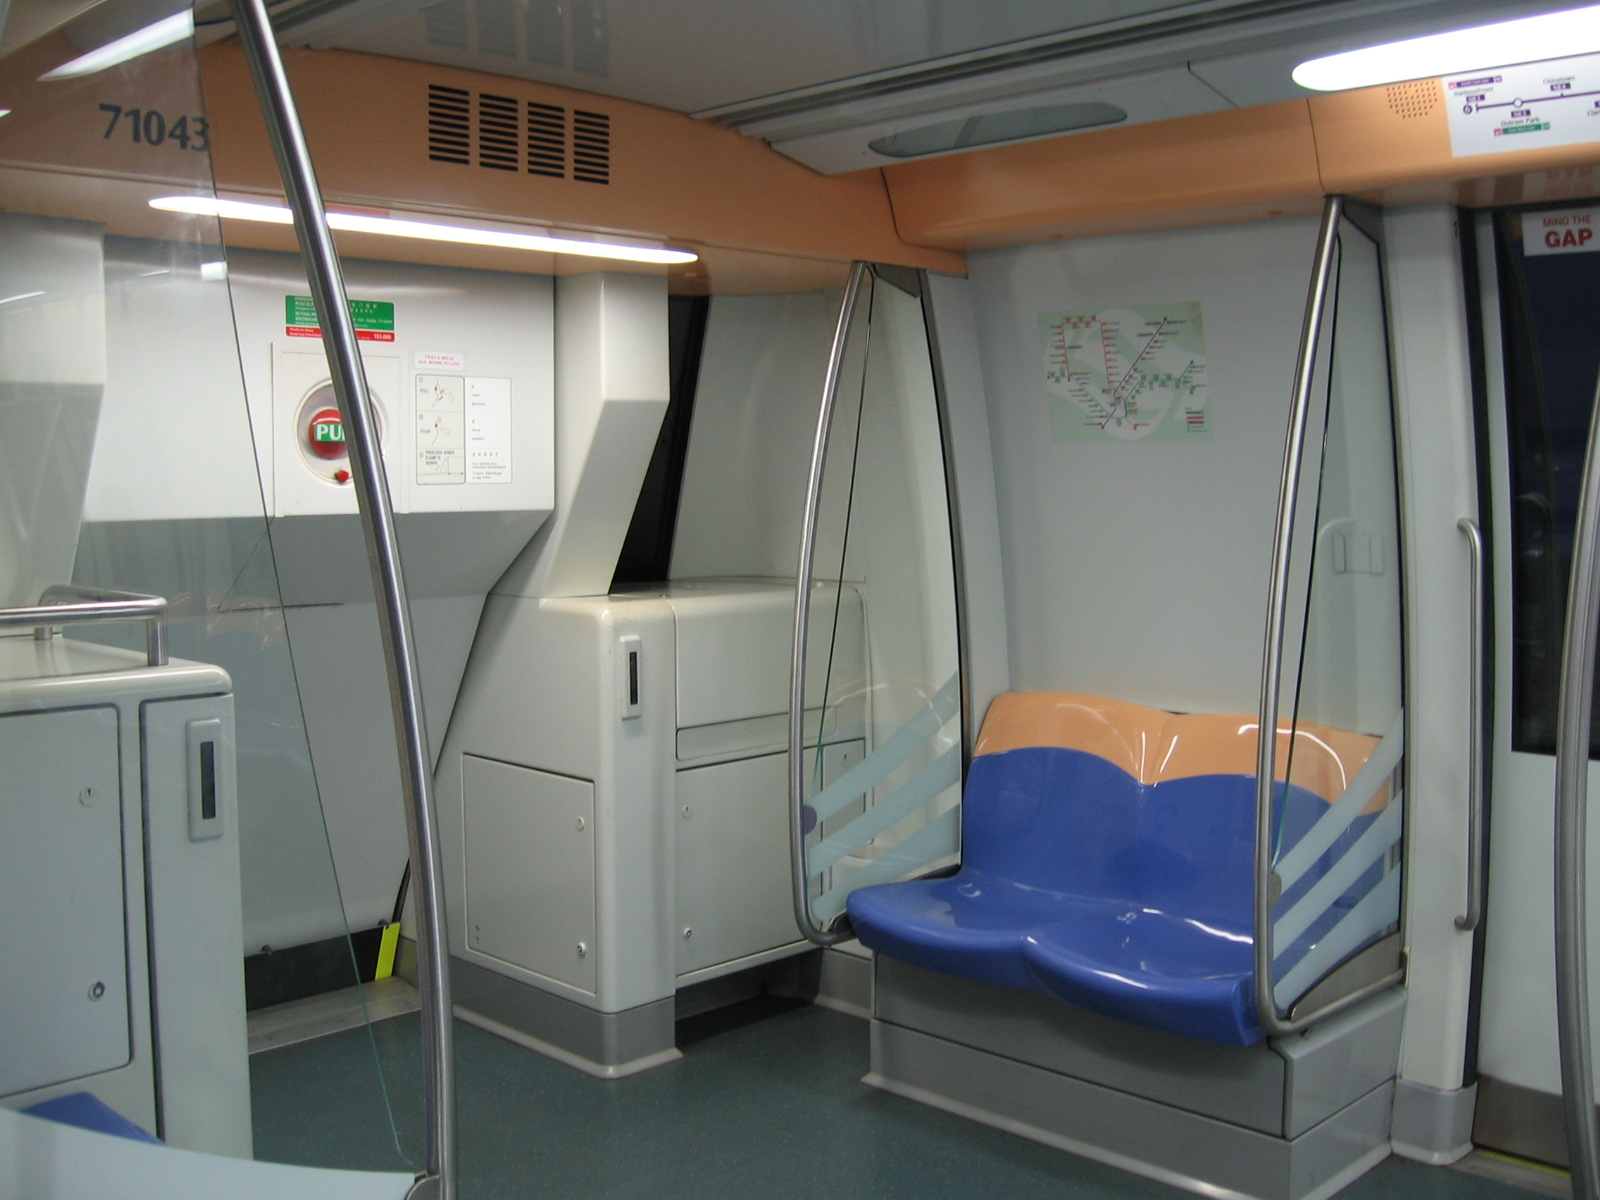 File:NORTH EAST LINE, Singapore, Train 2, Aug 06.JPG - Wikipedia, the ...